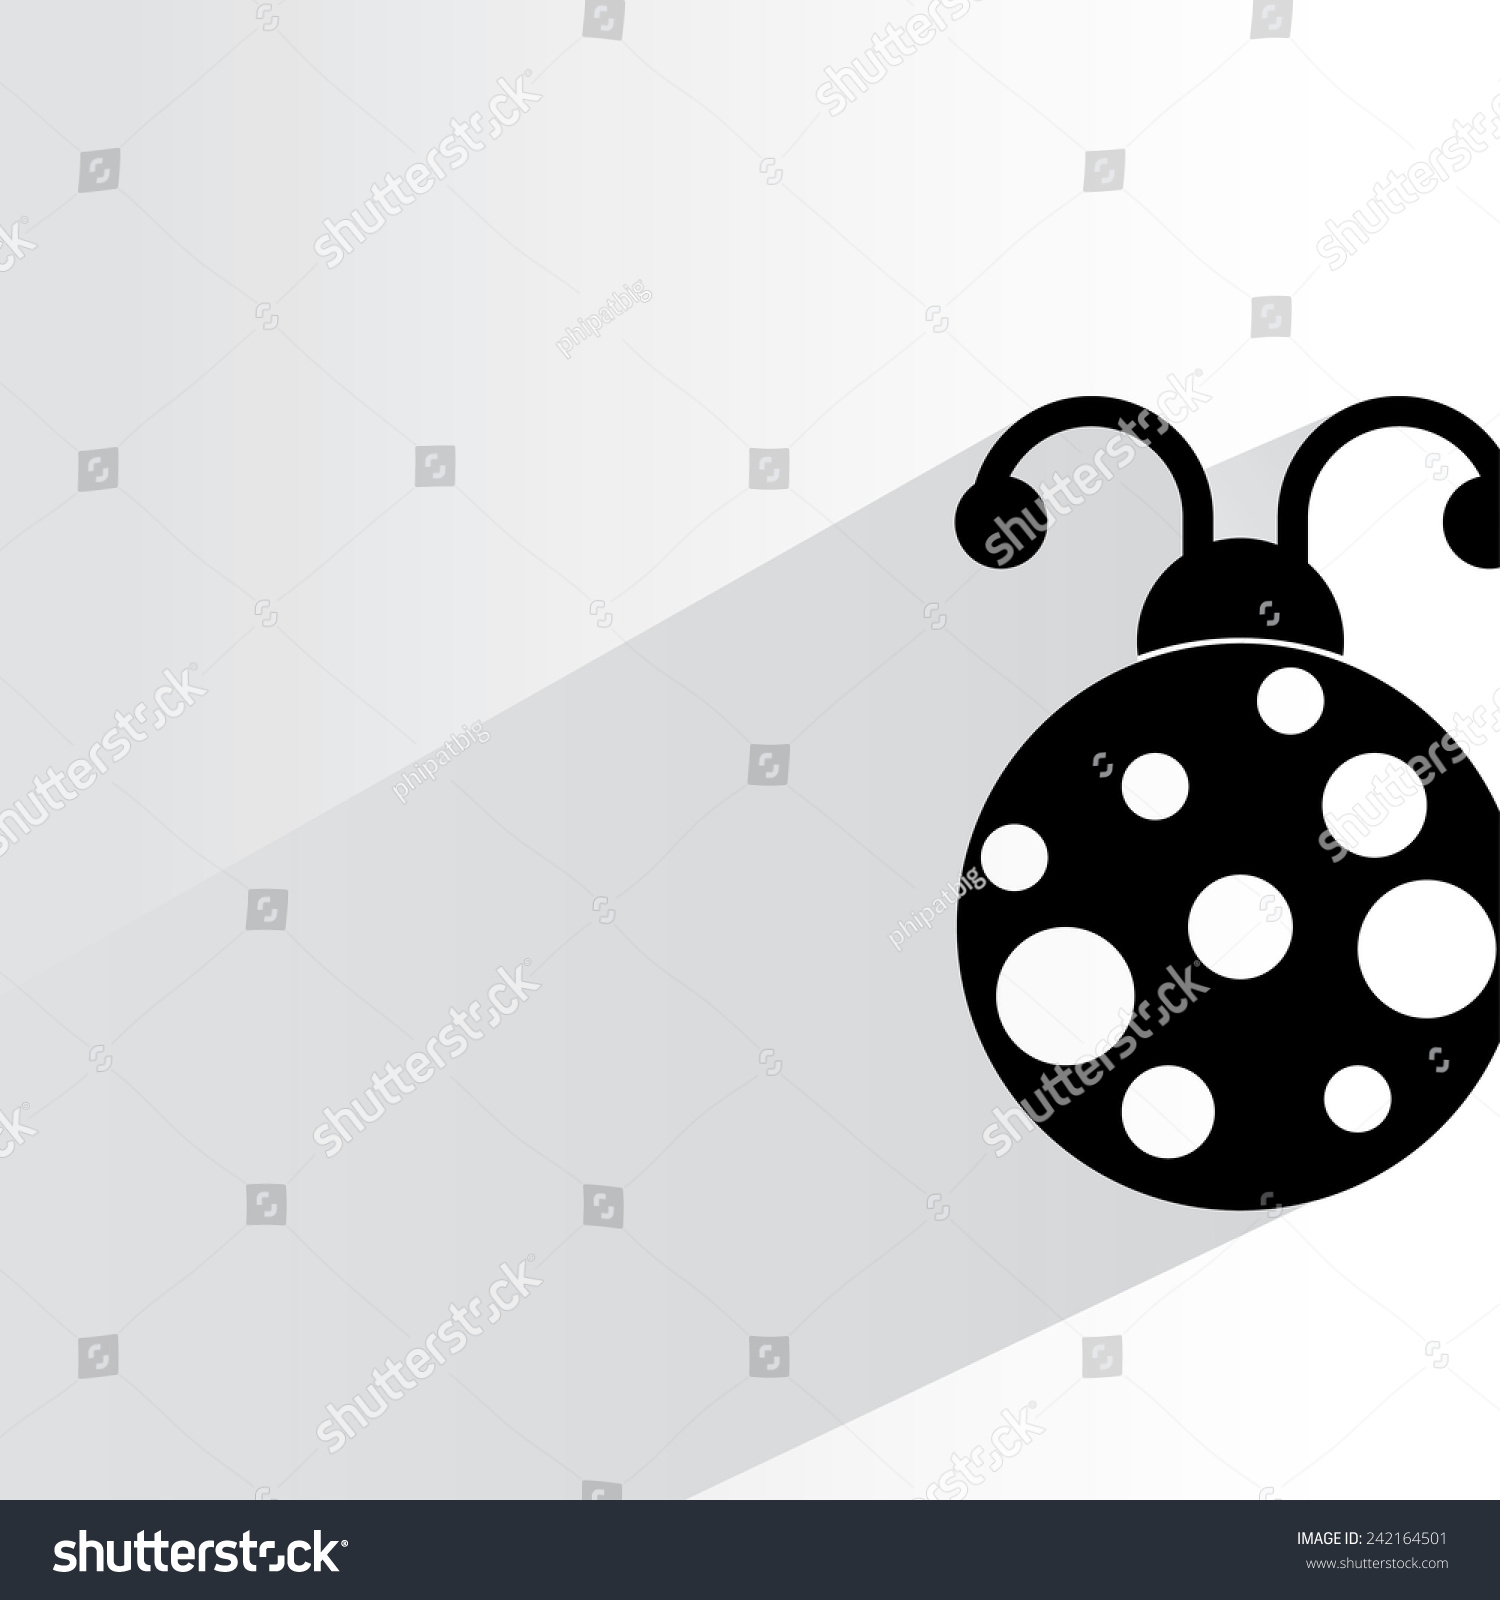 Lady Bug On White Background Flat Stock Vector (Royalty Free) 242164501